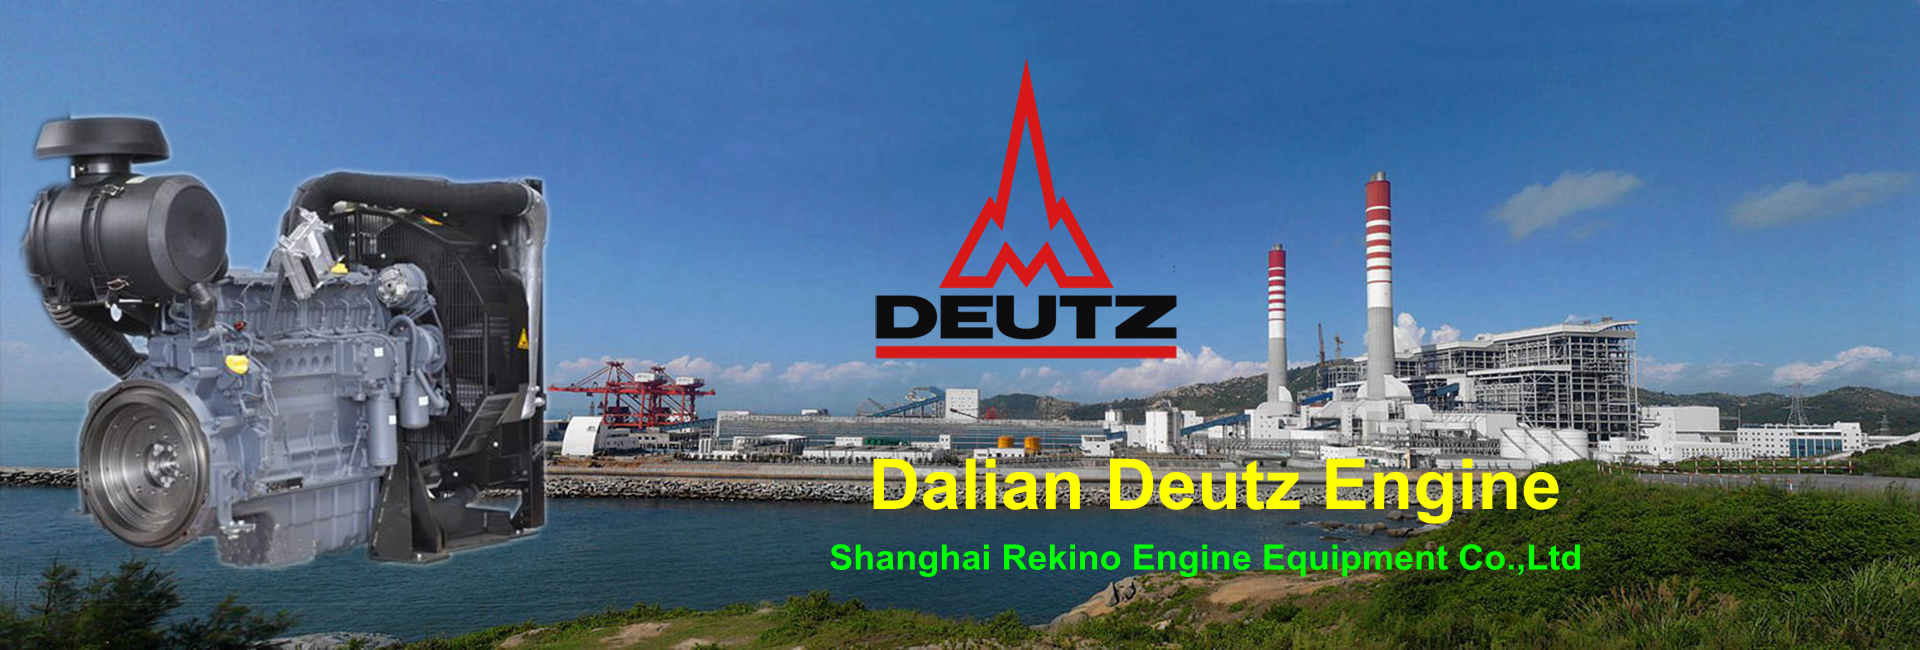 Dalian Deutz engine 2